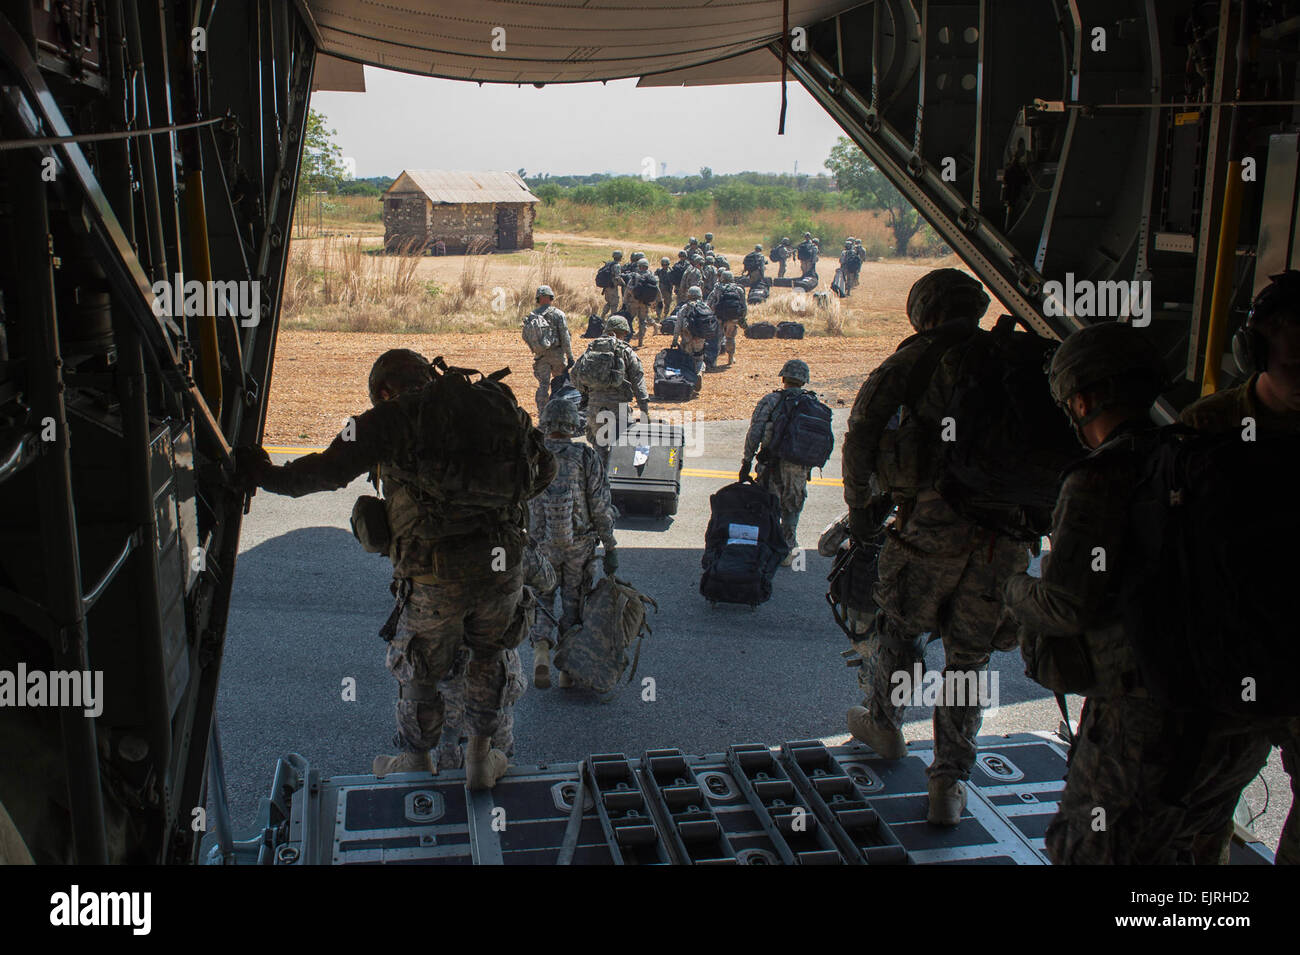 U.S. Army Soldiers with Combined Joint Task Force-Horn of Africa's East Africa Response Force EARF depart an - Stock Image